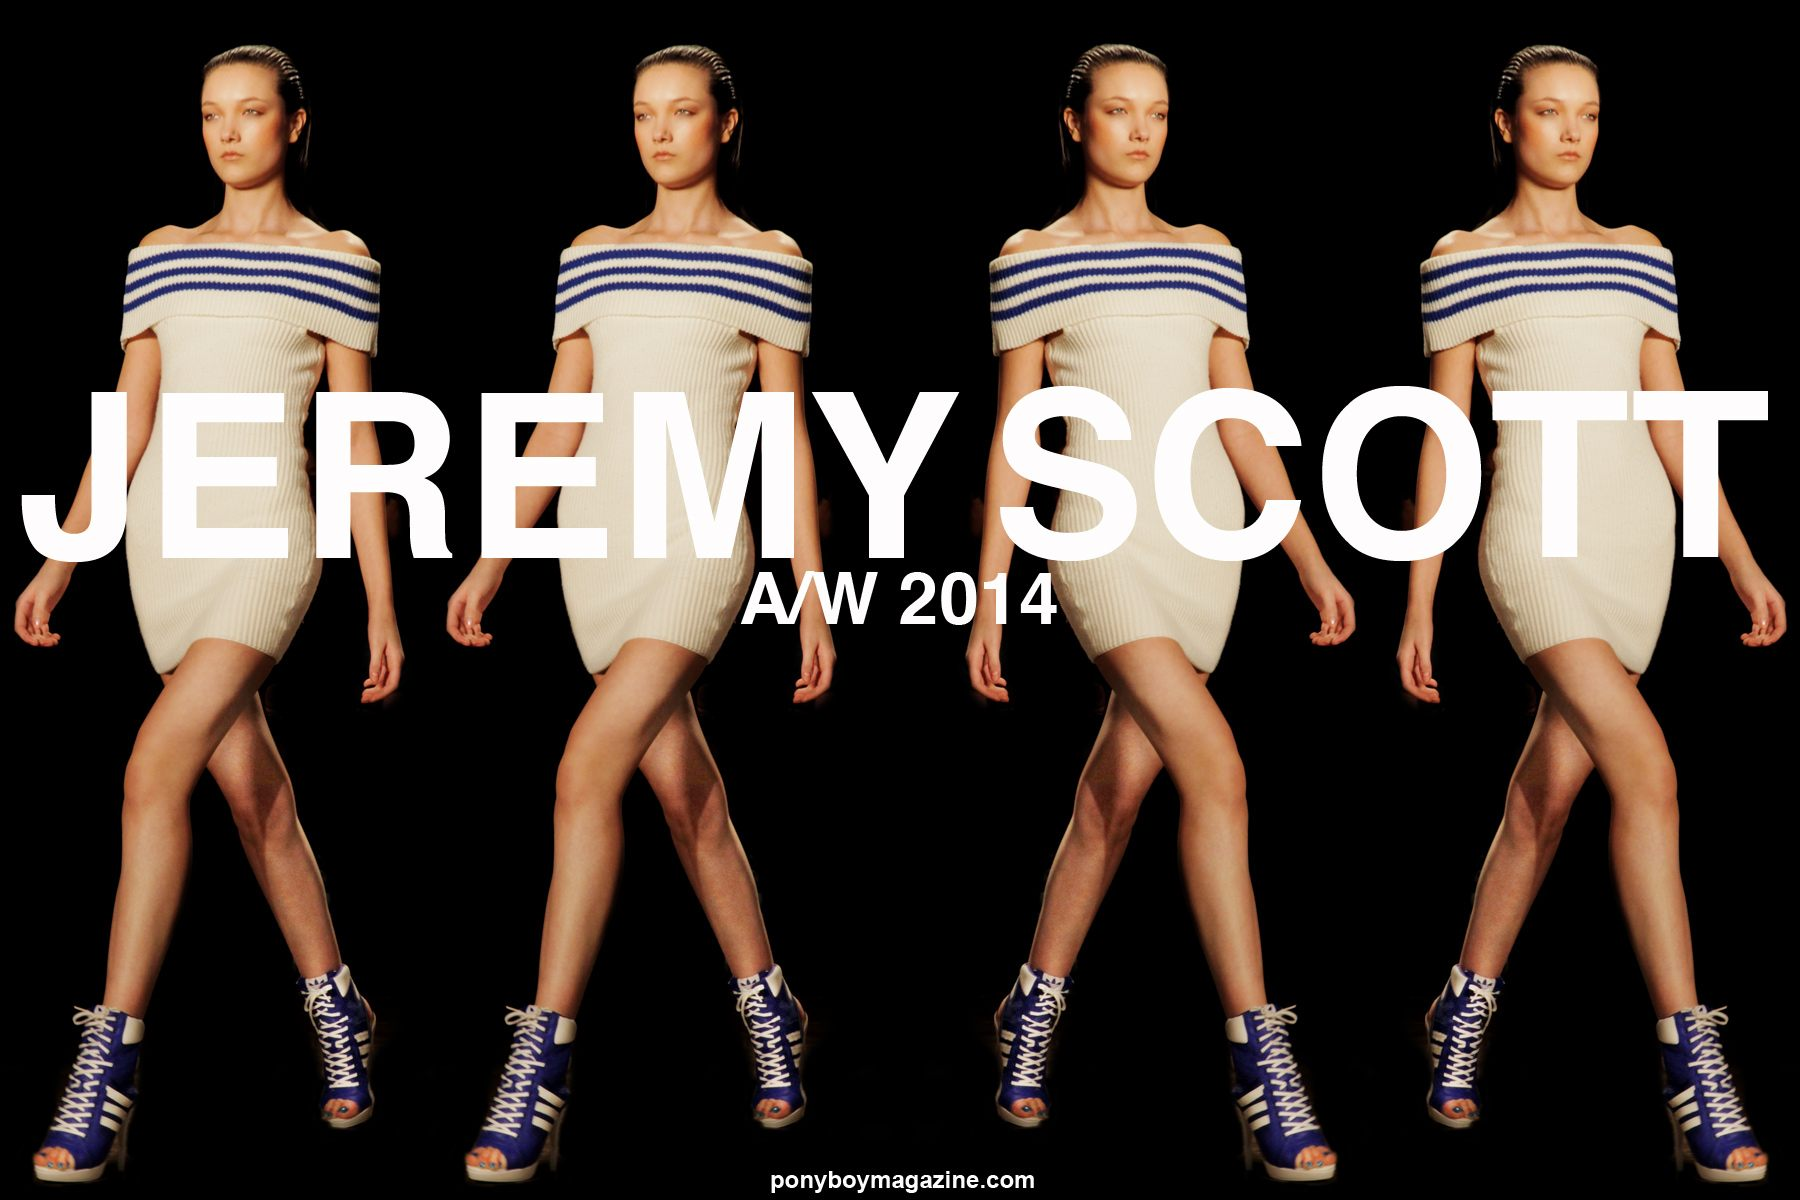 Jeremy Scott Autumn/Winter 2014 women's and menswear collection at Milk Studios in downtown Manhattan. Photograph by Alexander Thompson for Ponyboy Magazine.